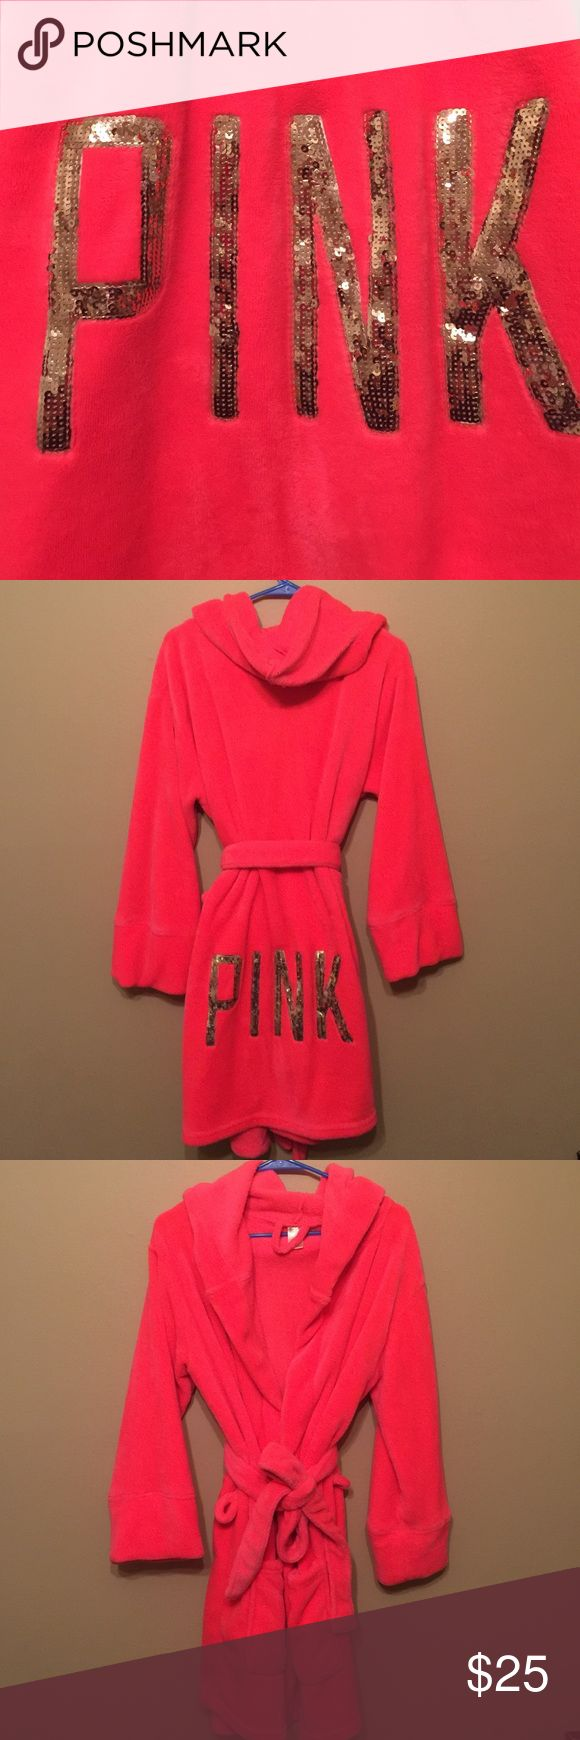 """PINK Plush Robe Luxurious soft bathrobe in a neon pink color with gold sequins """"PINK"""" on back. Excellent used condition. Size M-L. PINK Victoria's Secret Intimates & Sleepwear Robes"""